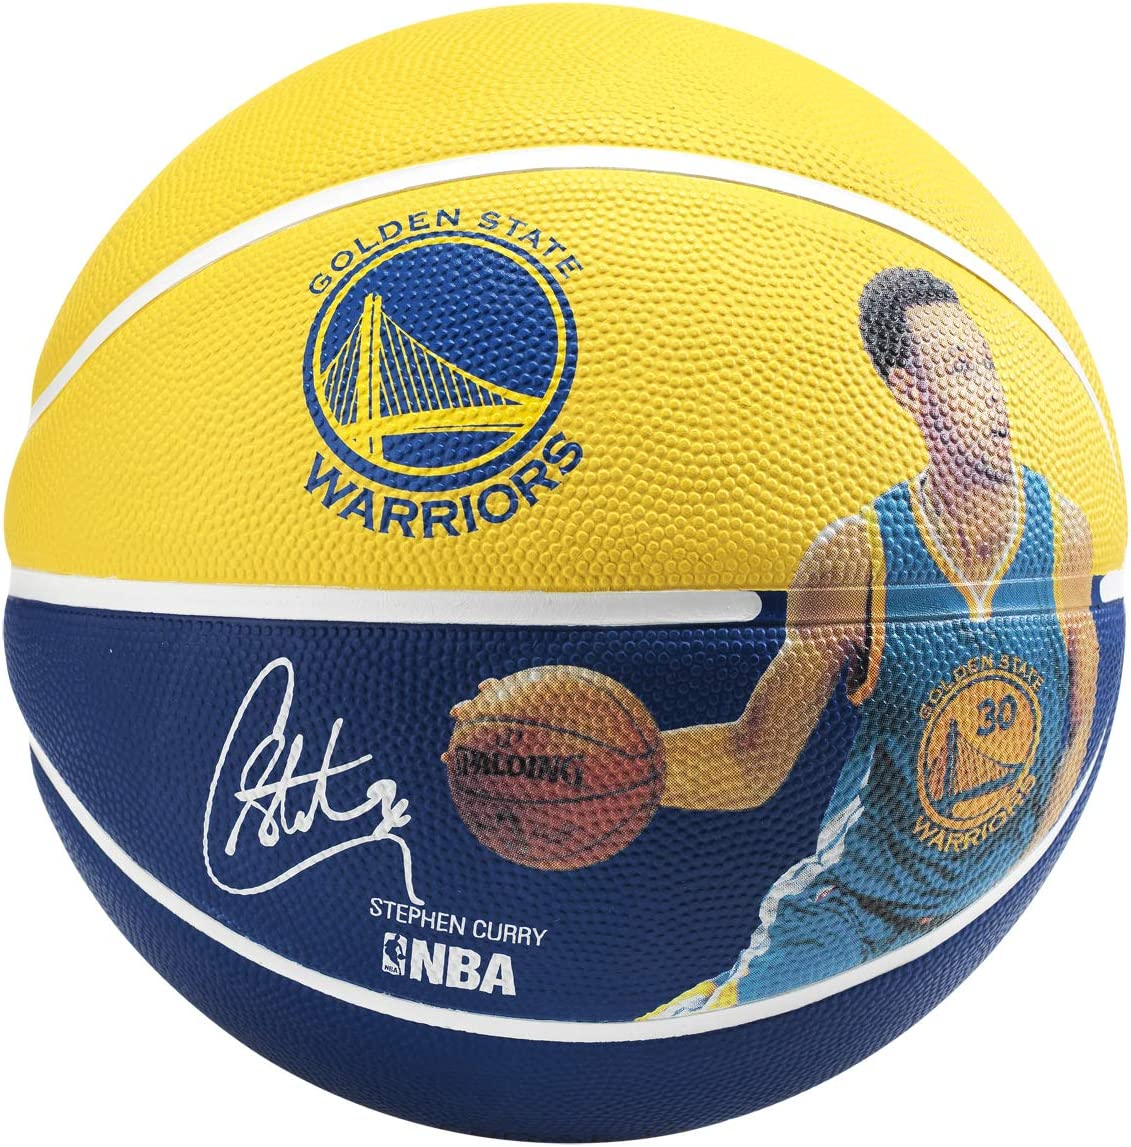 Spalding NBA Player Basketball, Style: Stephen Curry